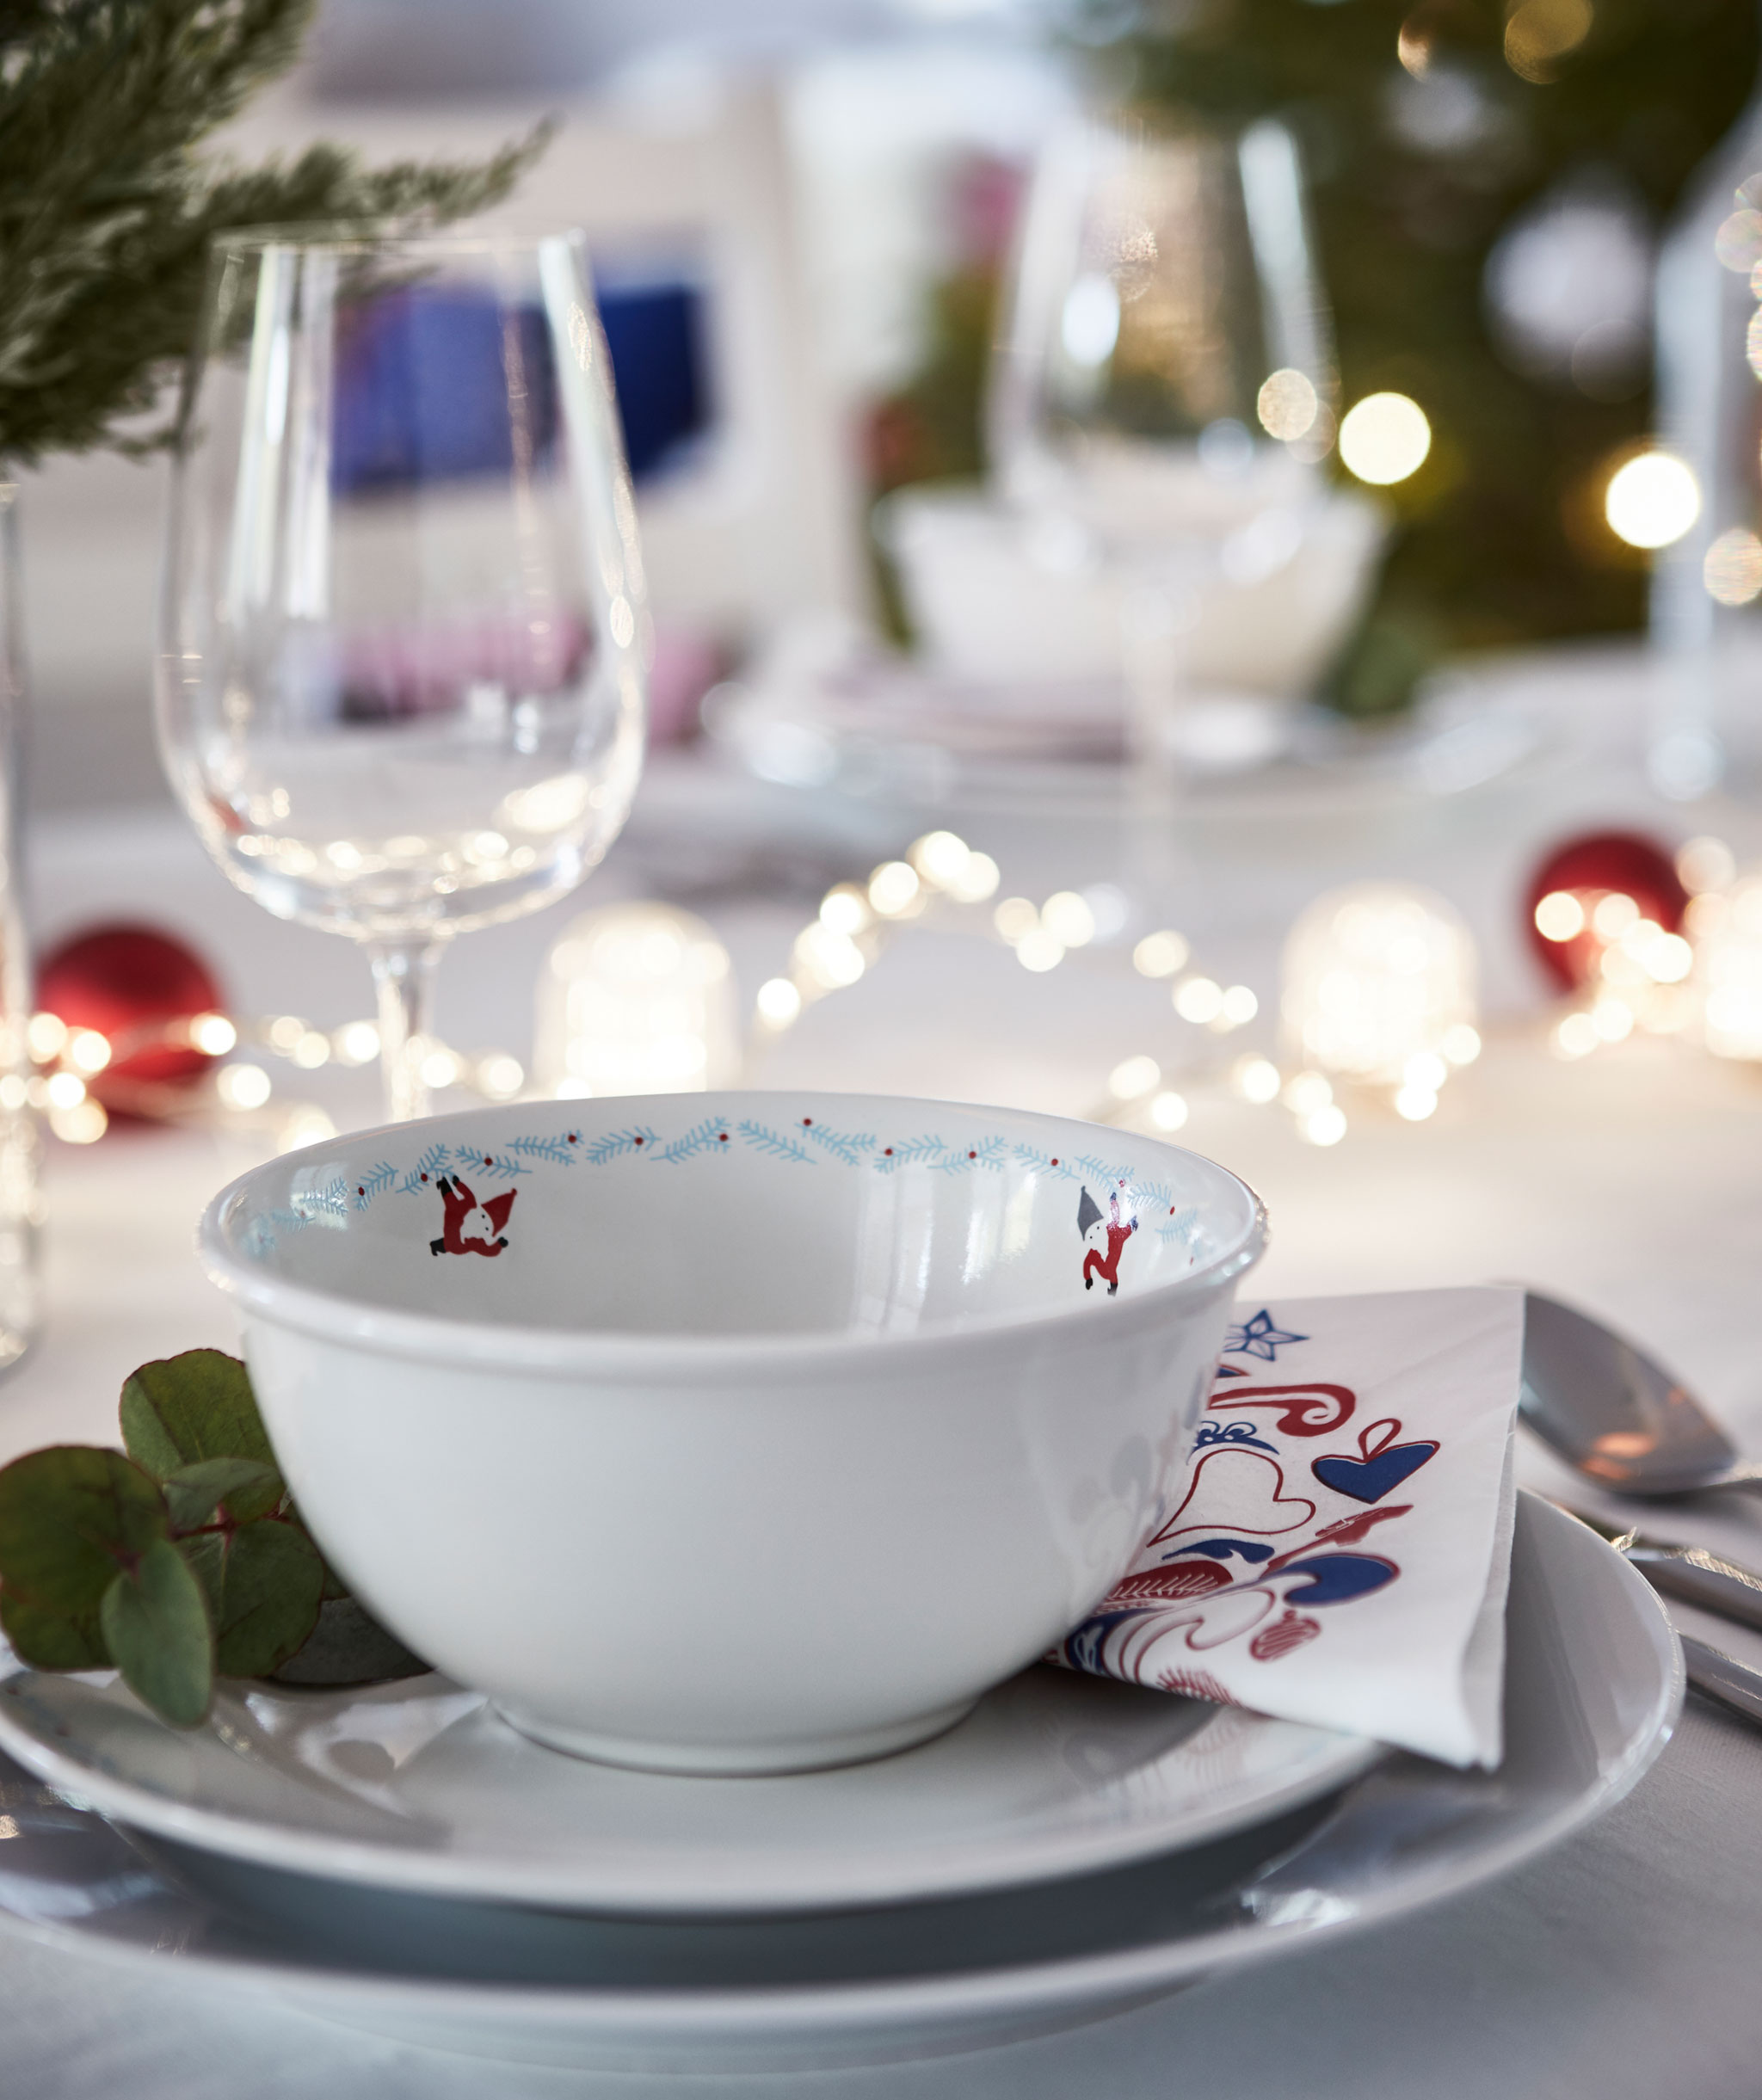 One-person section of festively set table. Multiple plates, lighting chains on table, winter-green decorations, wine glass.